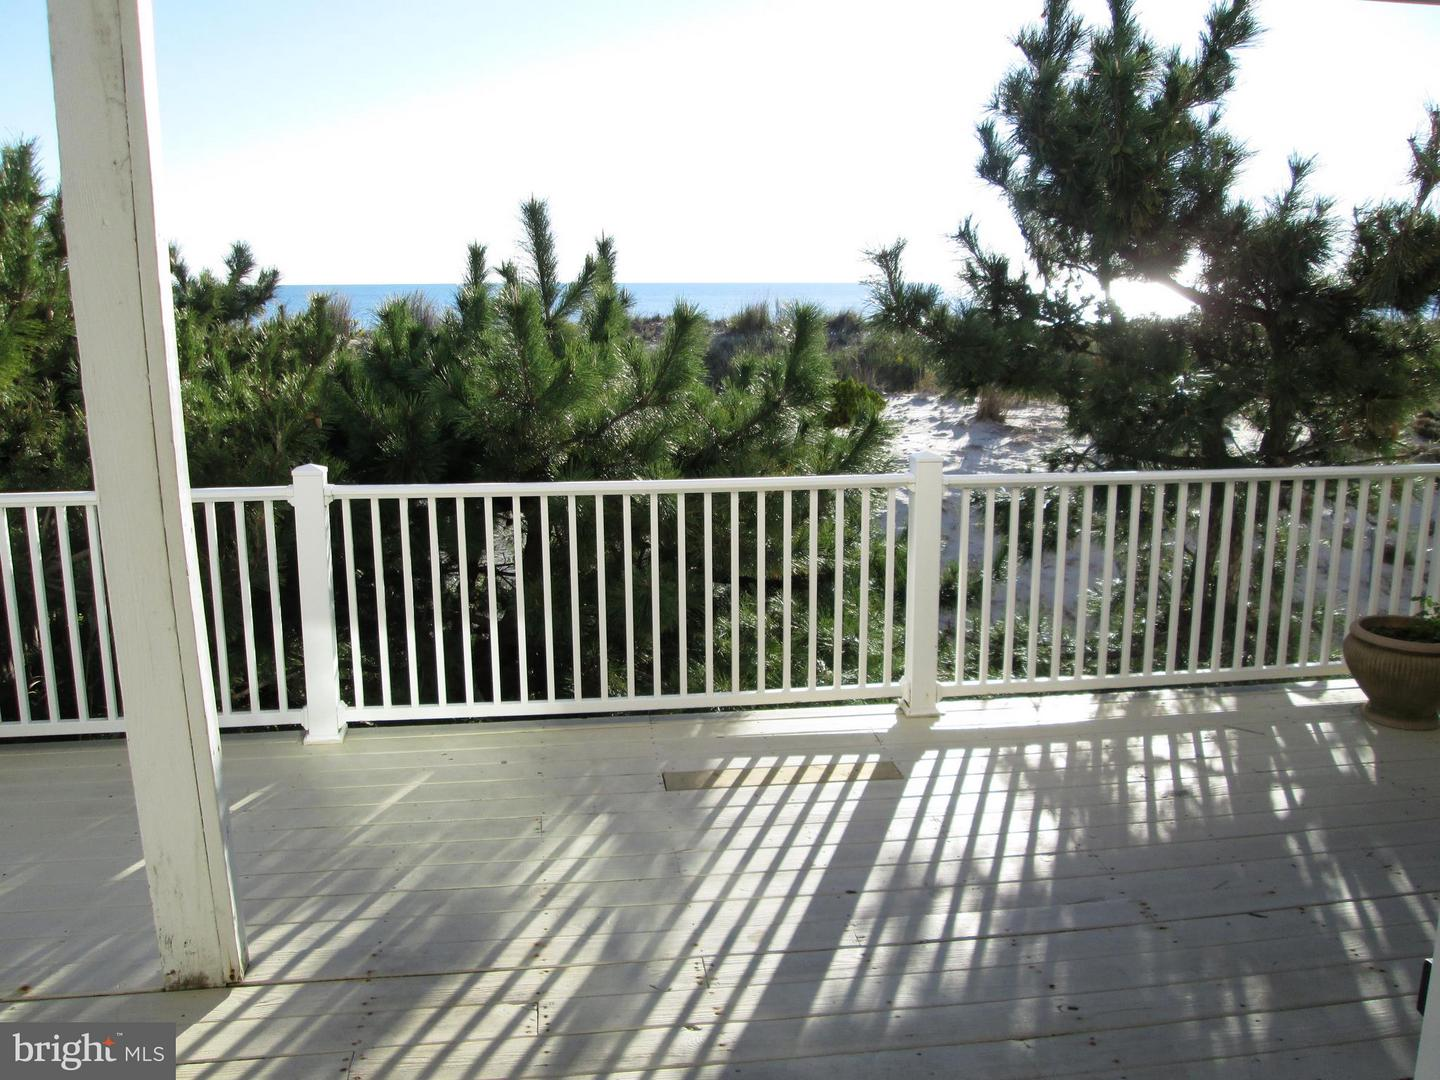 1009972274-300920562301-2018-10-22-09-17-09 38955 Bunting Ave #north Unit | Fenwick Island, DE Real Estate For Sale | MLS# 1009972274  - 1st Choice Properties